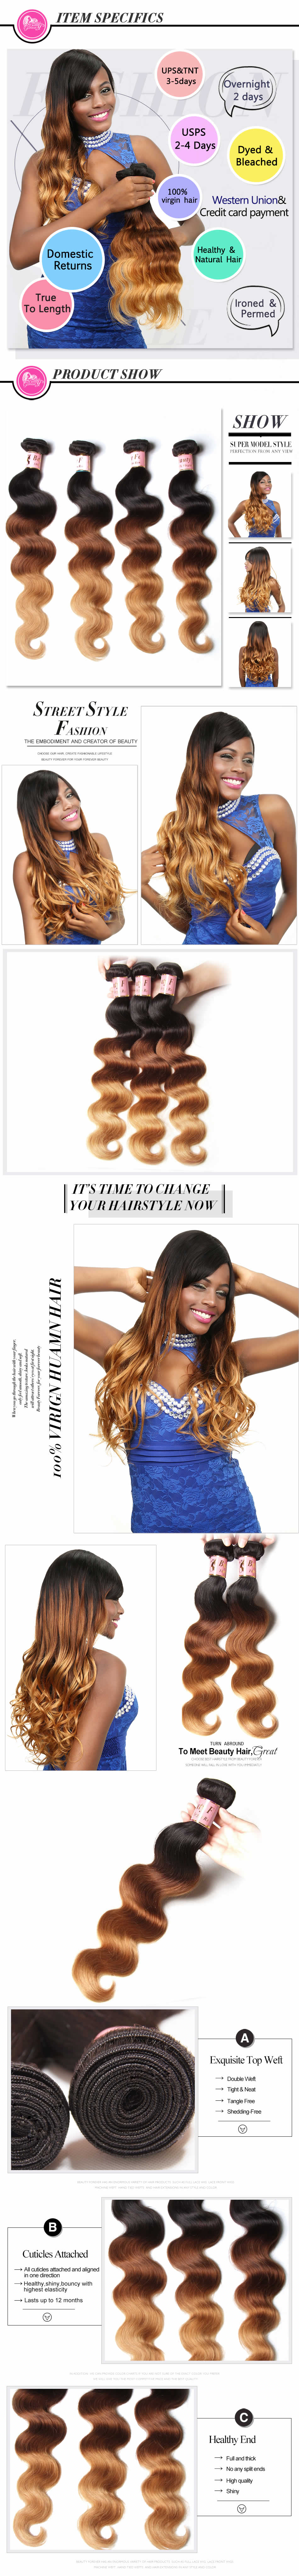 Malaysian Ombre Body Wave Weave